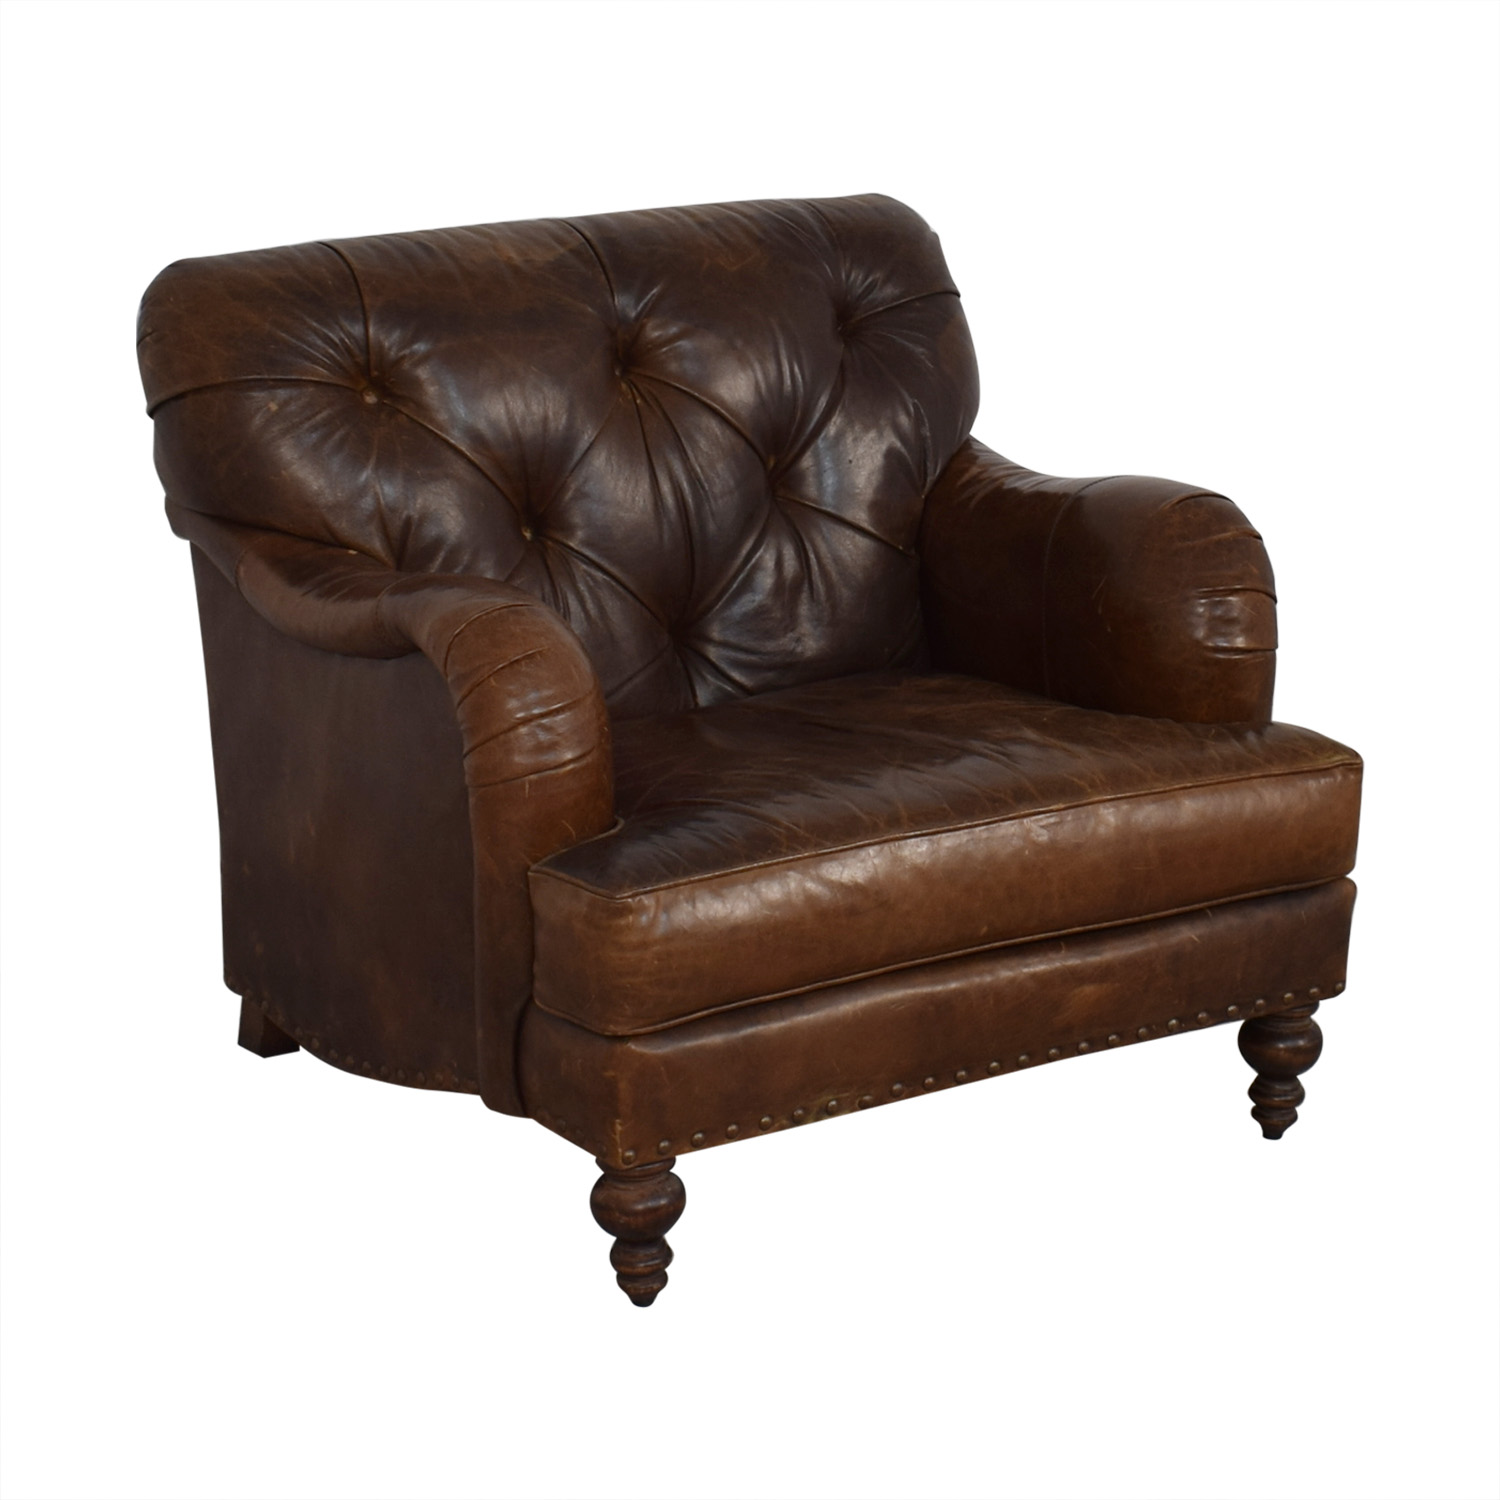 COCOCO COCOCO Chesterfield Accent Chair coupon